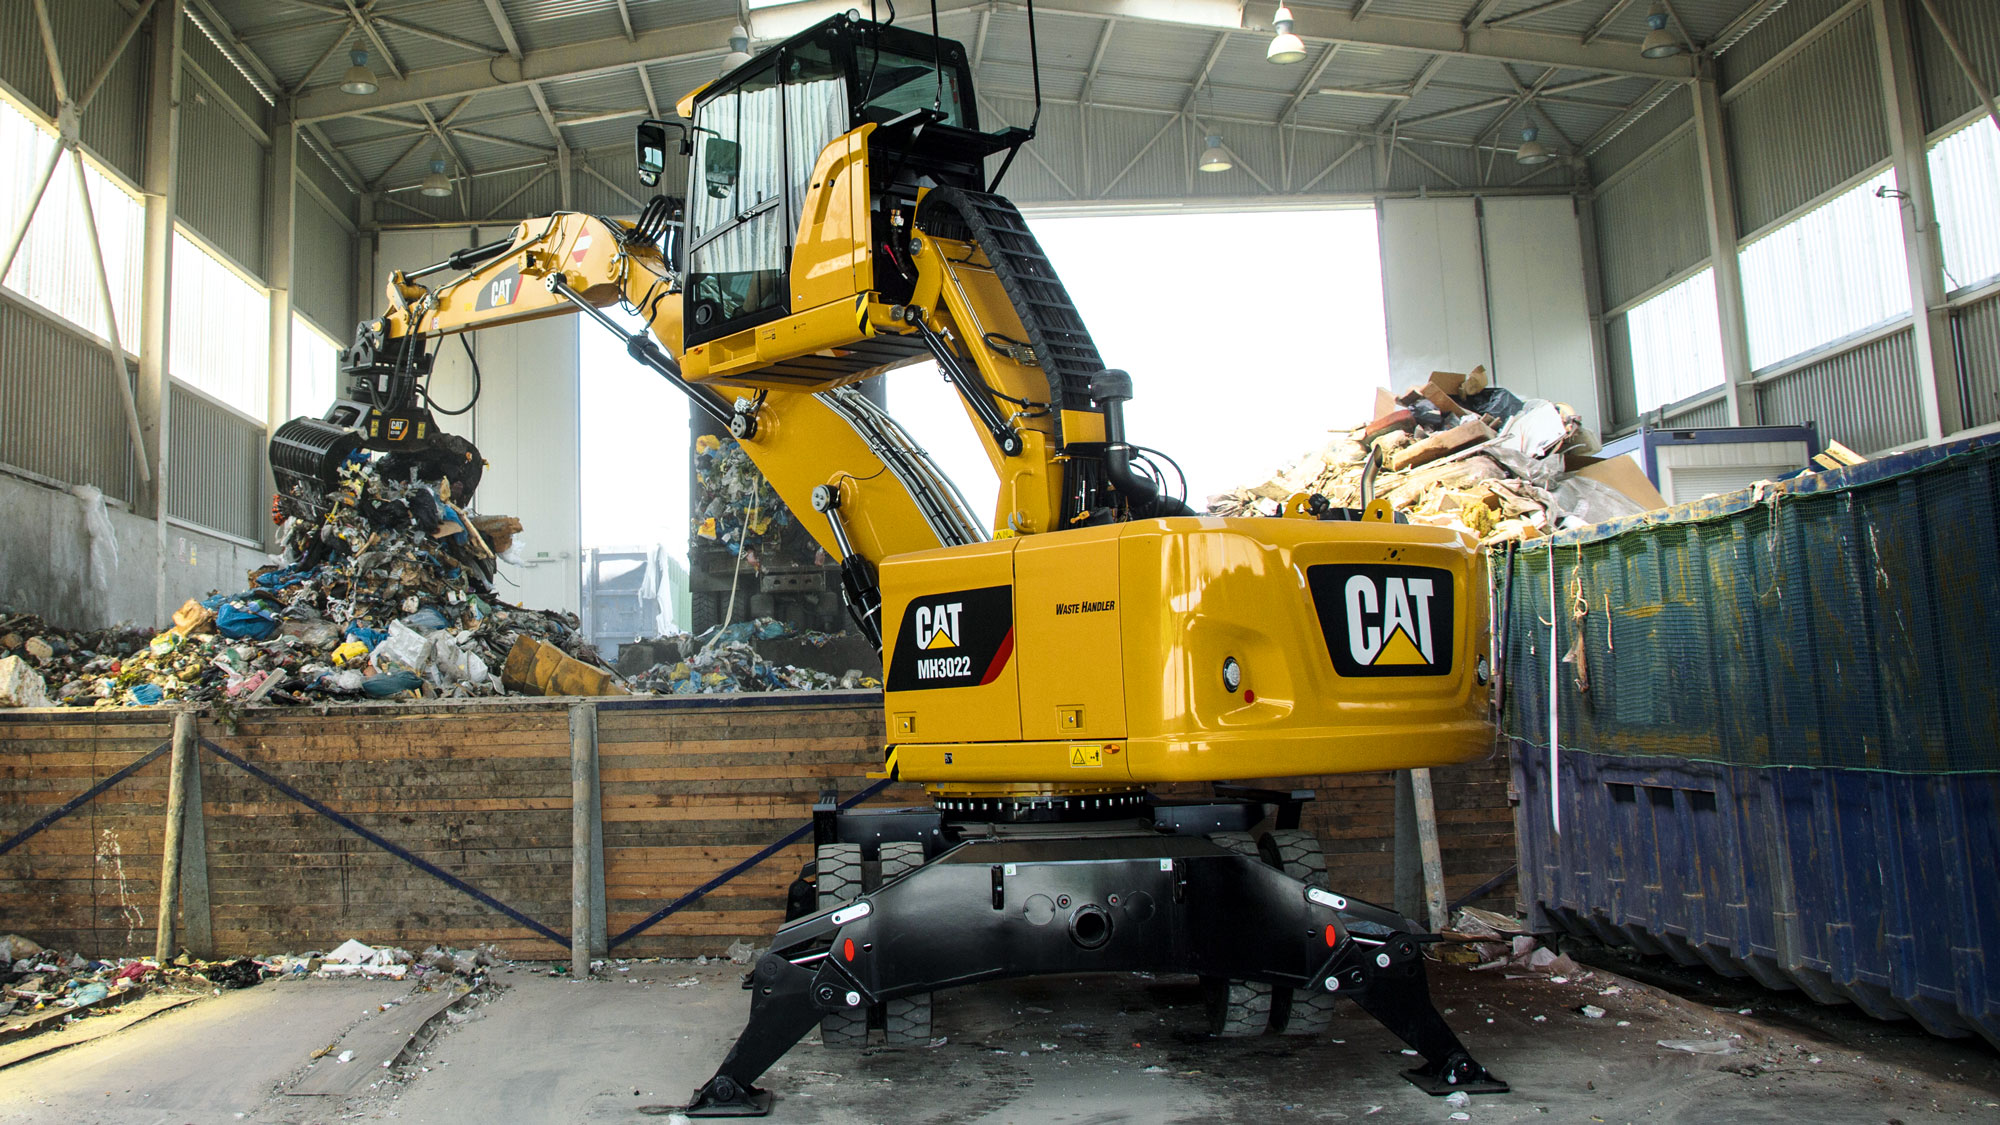 Cat Umschlagbagger MH3022